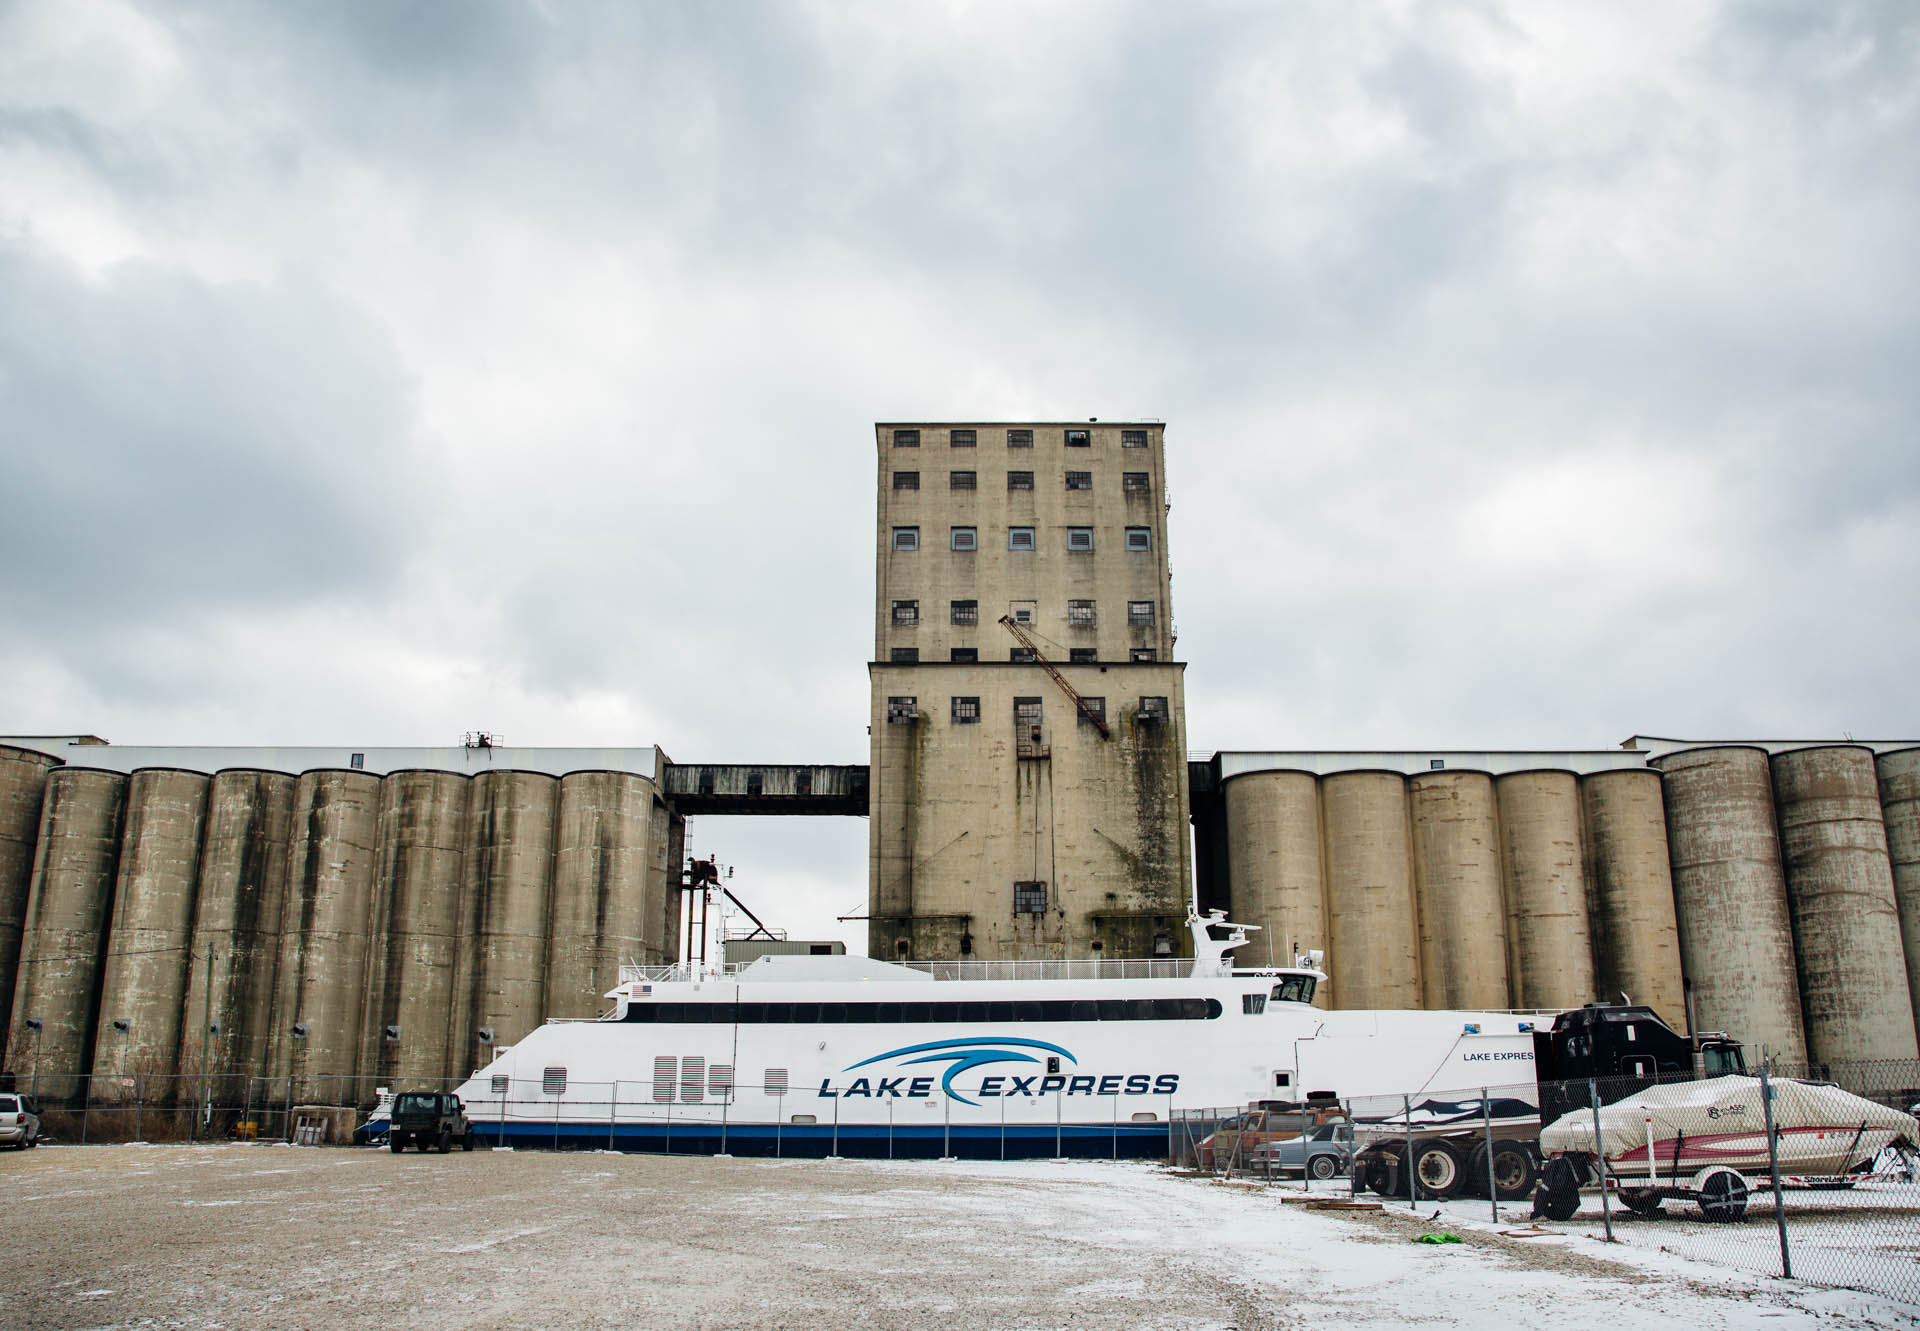 cargill-grain-elevator-lake-express-milwaukee-wi-4102untitled